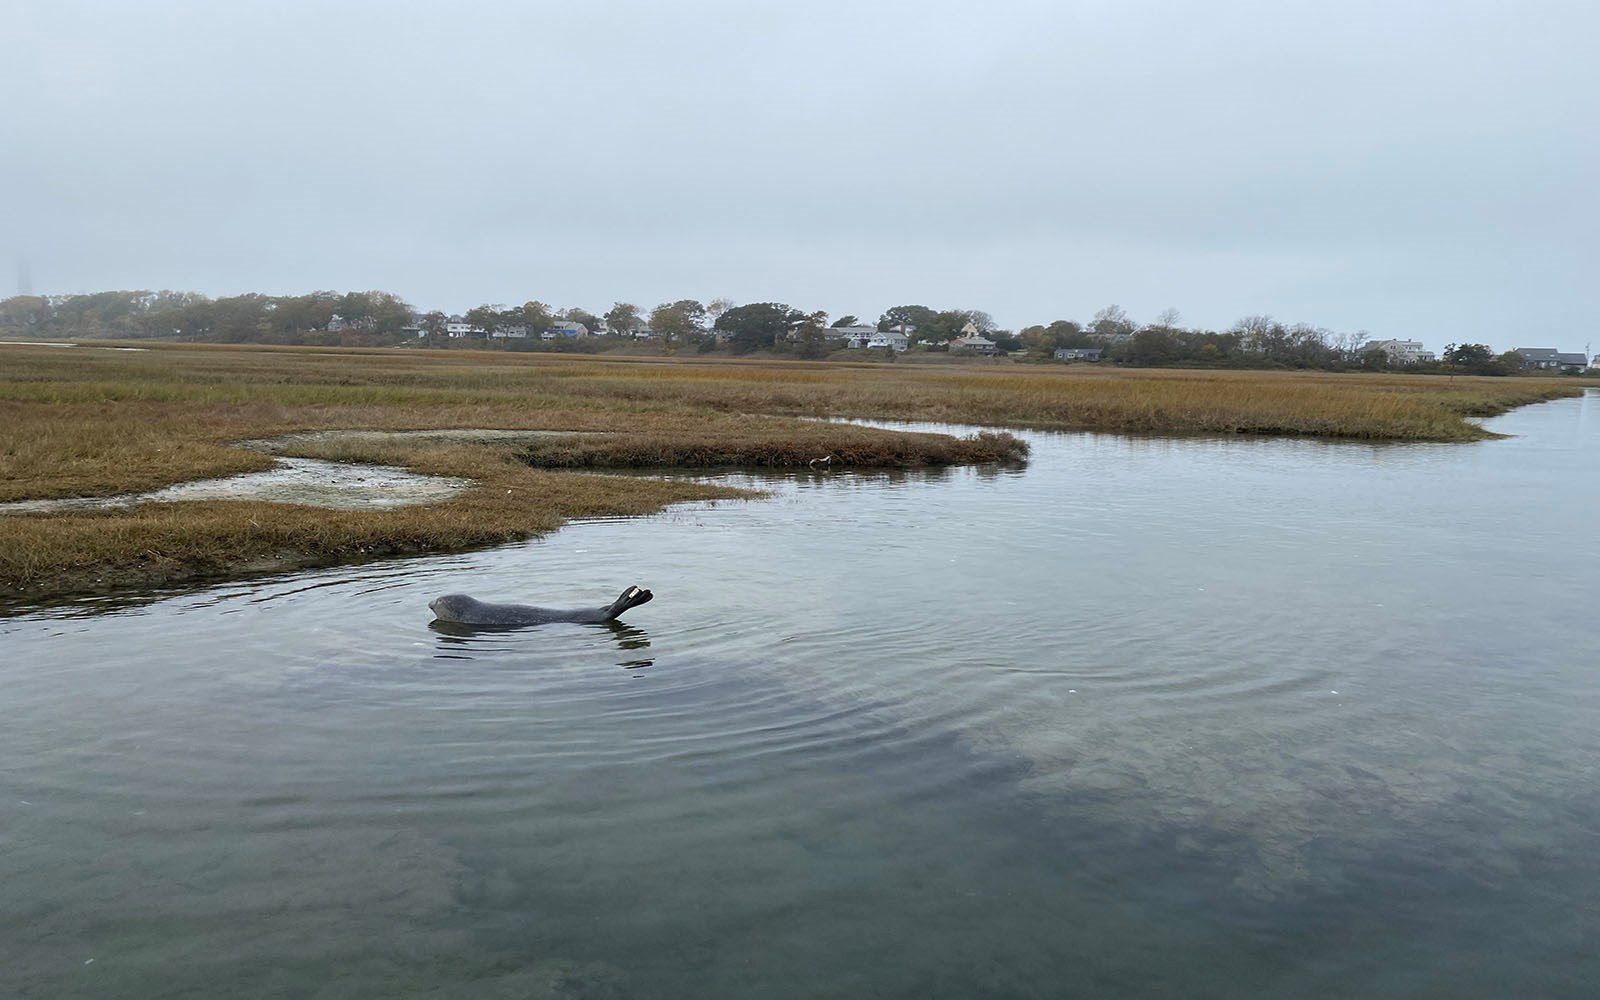 A seal was recently spotted at the Sandwich Boardwalk.